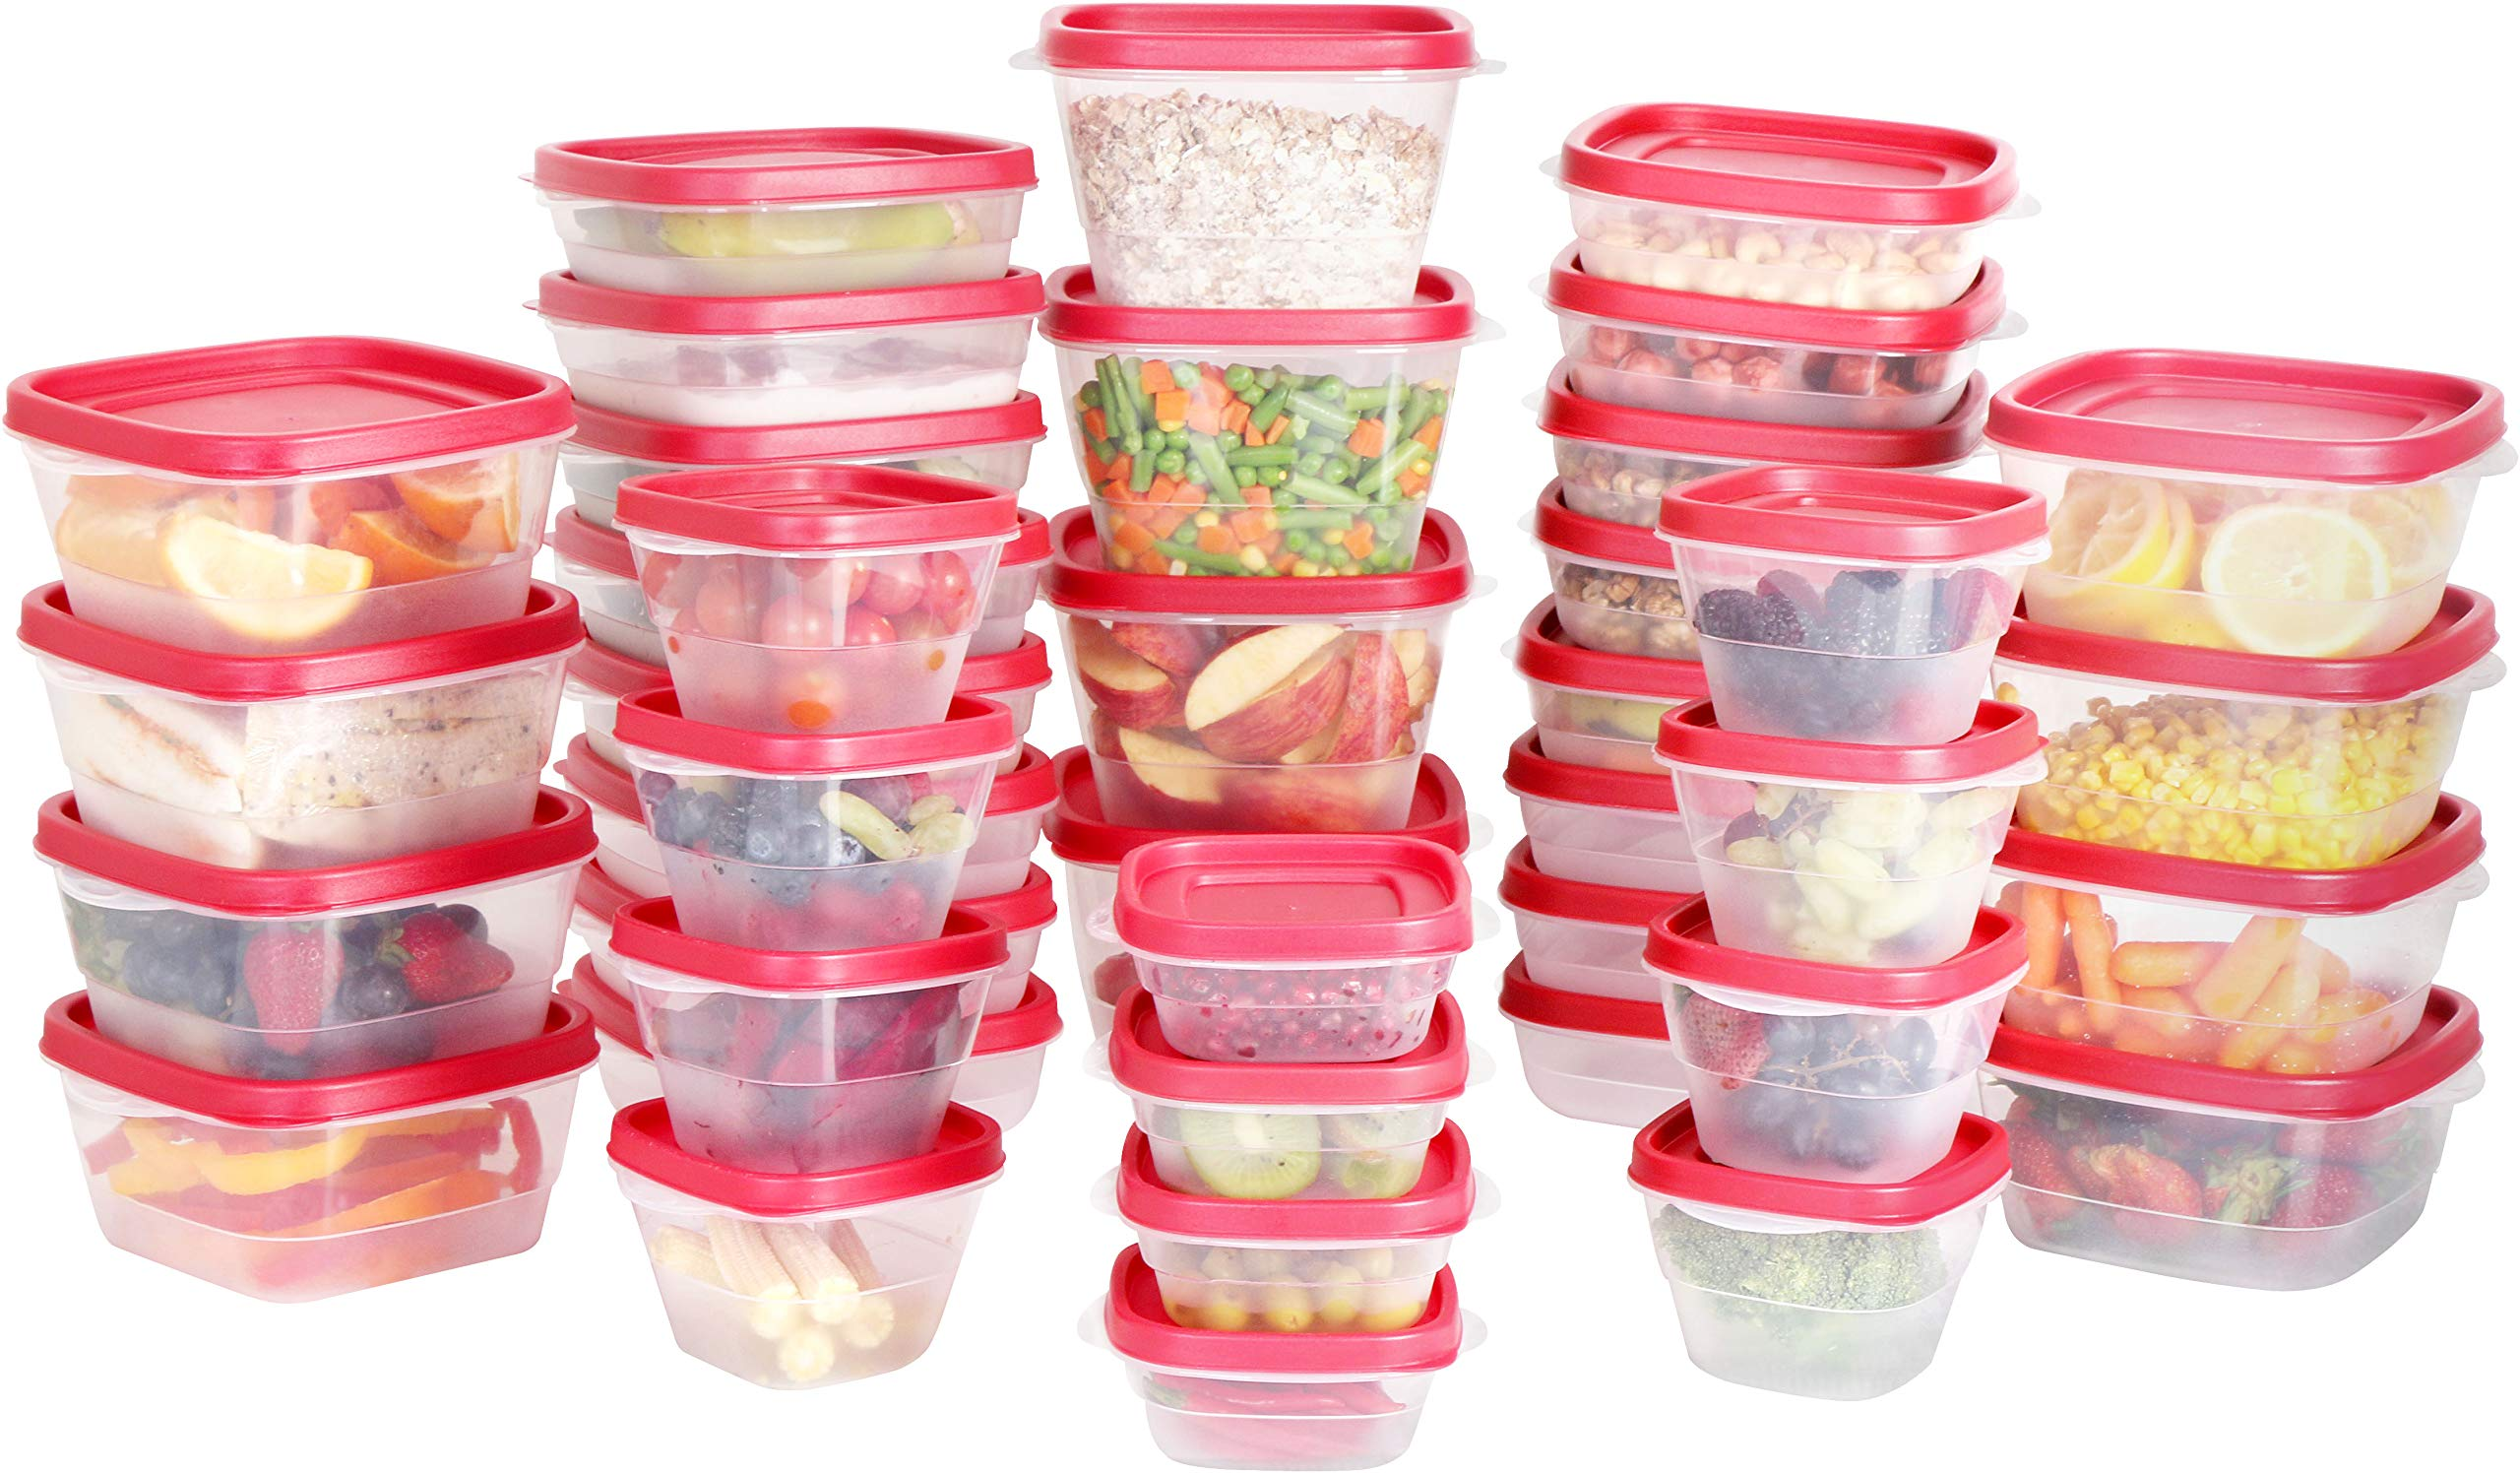 Utopia Kitchen Plastic Food Storage Containers with Lids [40 Pack] by Utopia Kitchen (Image #2)